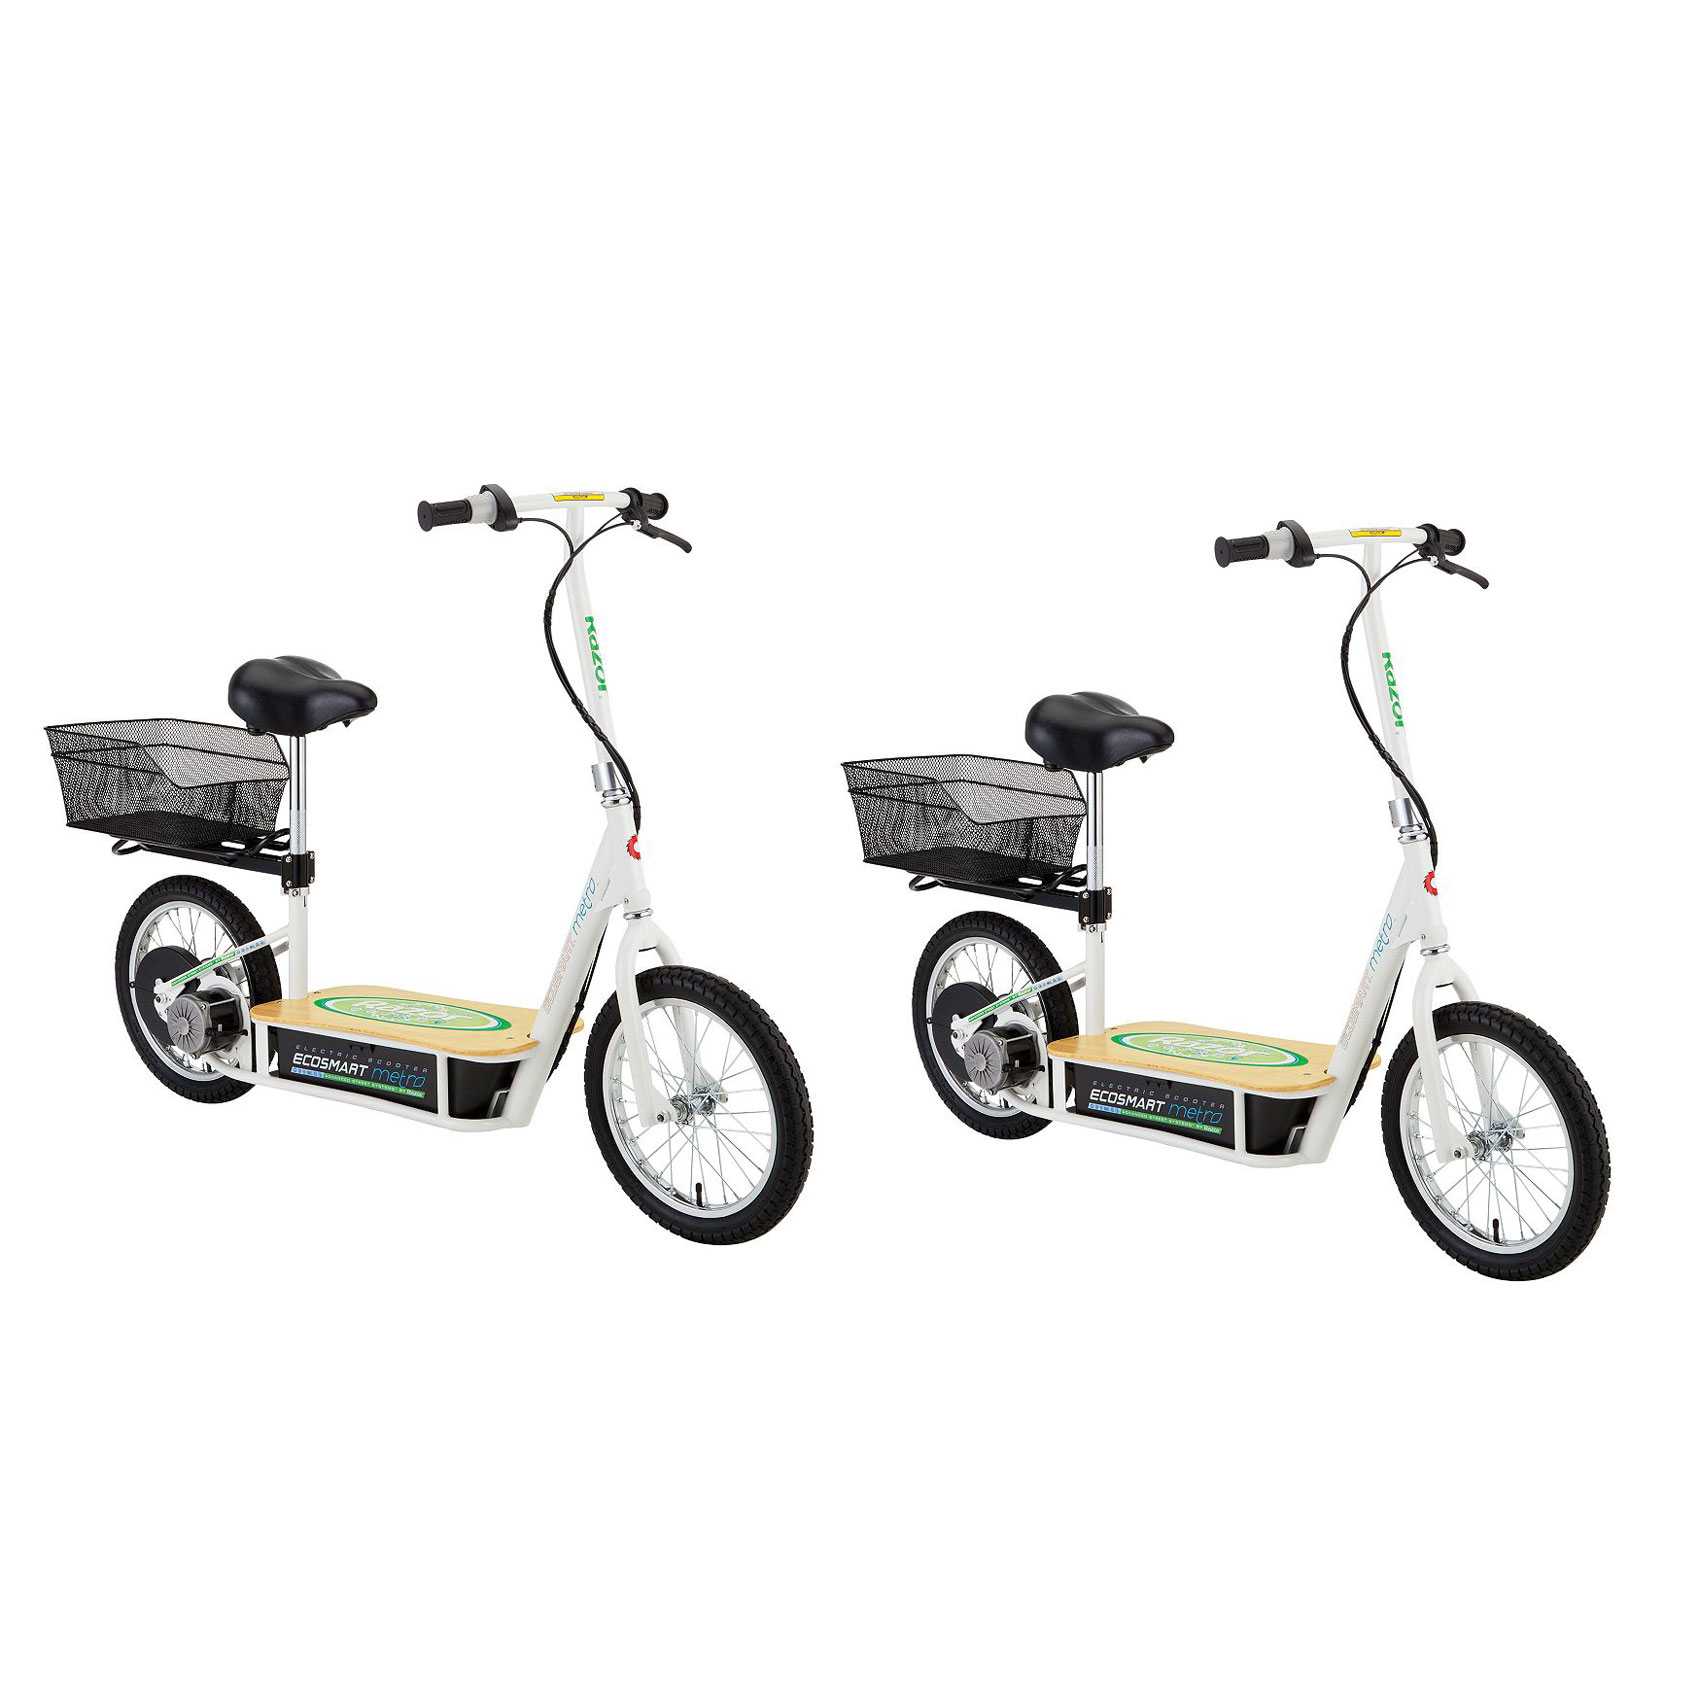 razor ecosmart metro electric economical green scooter with seat  u0026 rack  2 pack